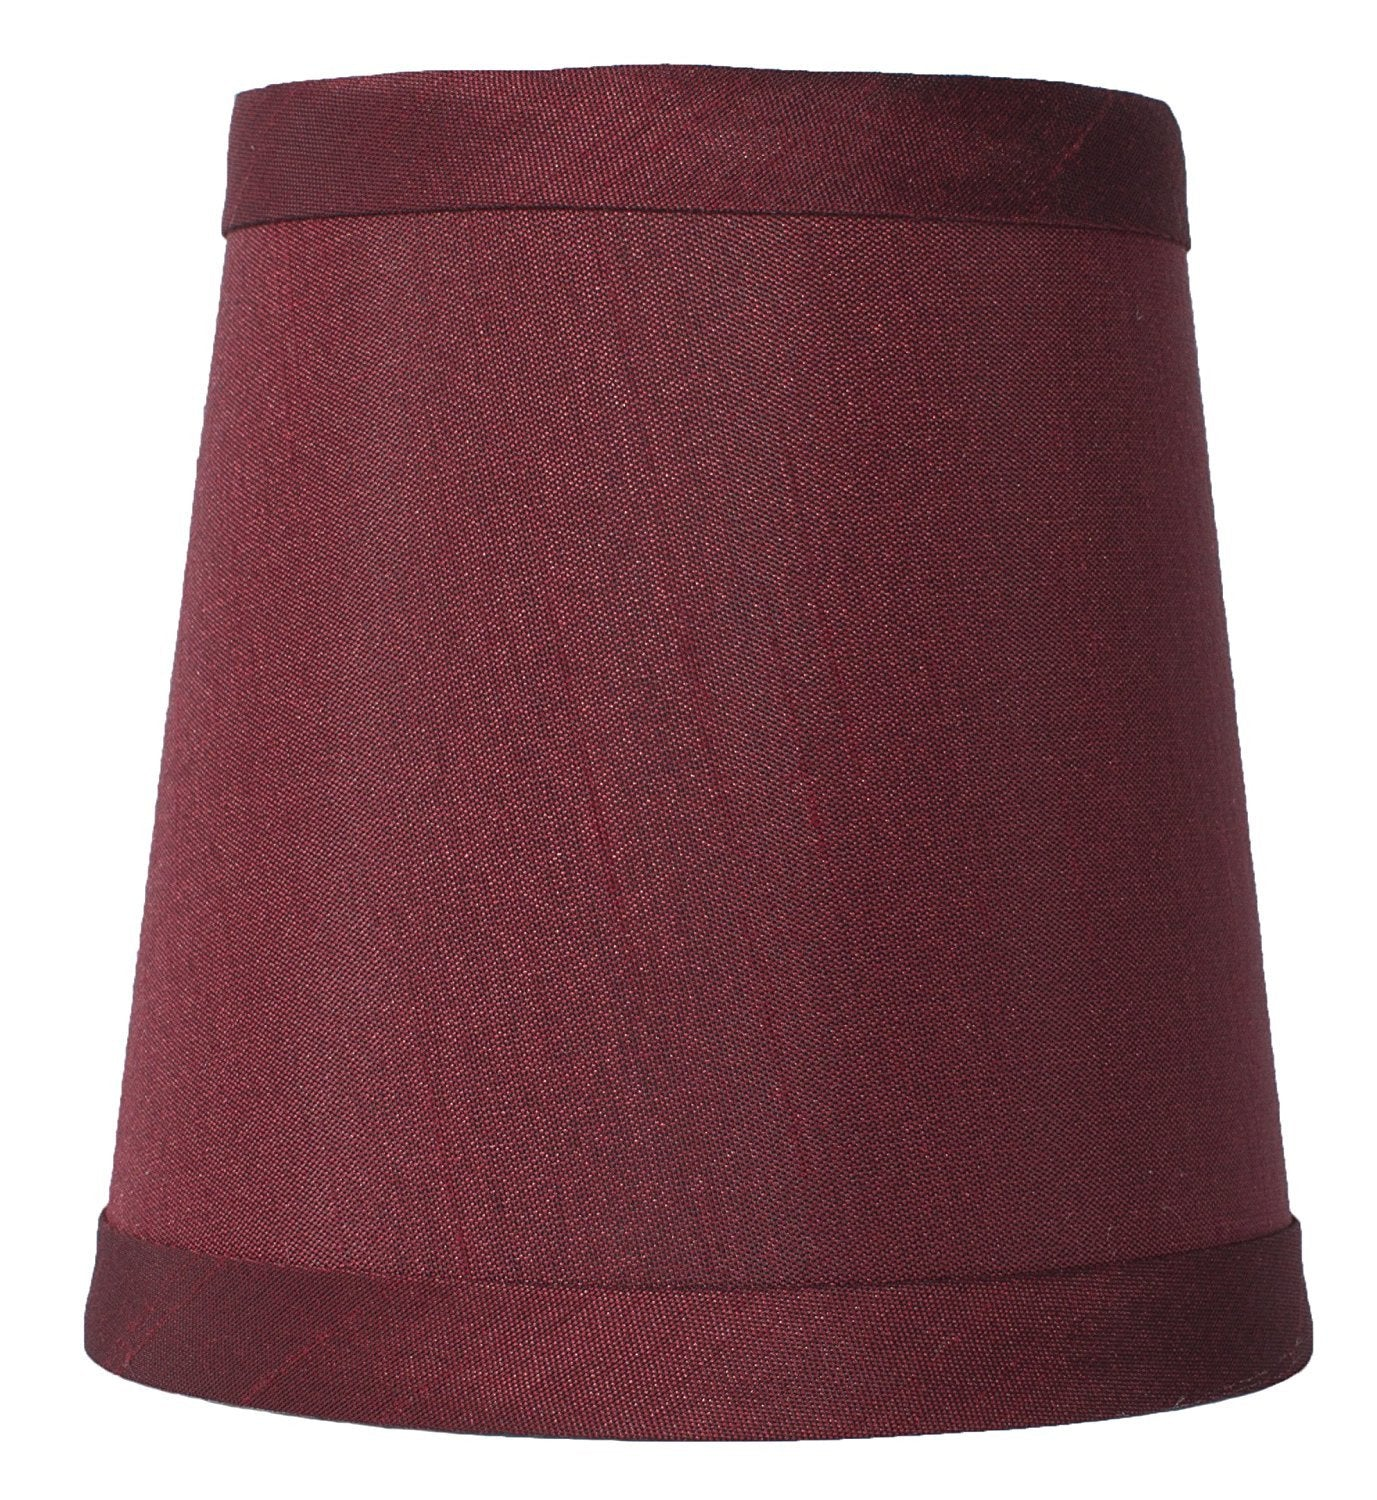 Faux Silk 4-inch Chandelier Lamp Shade - 9 Colors